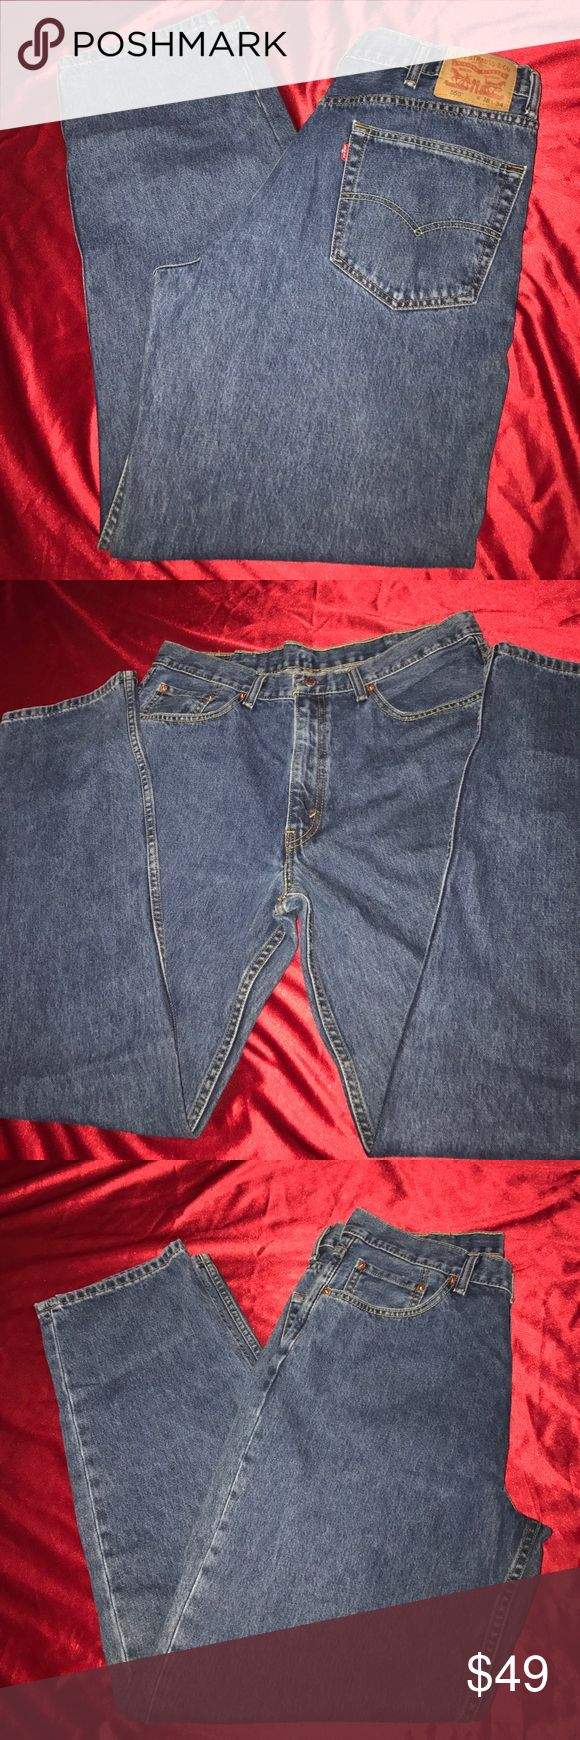 Levi Strauss & Co jeans men's Jeans Worn once and washed,these are men's jeans Levi's Straus 550,W38,L 34....purchased at Carsons and a med blue...the pictures show more and always authentic 💯...silver tone button and bronze color zipper..two front pockets & two back pockets. Levi strauss & co Jeans Relaxed